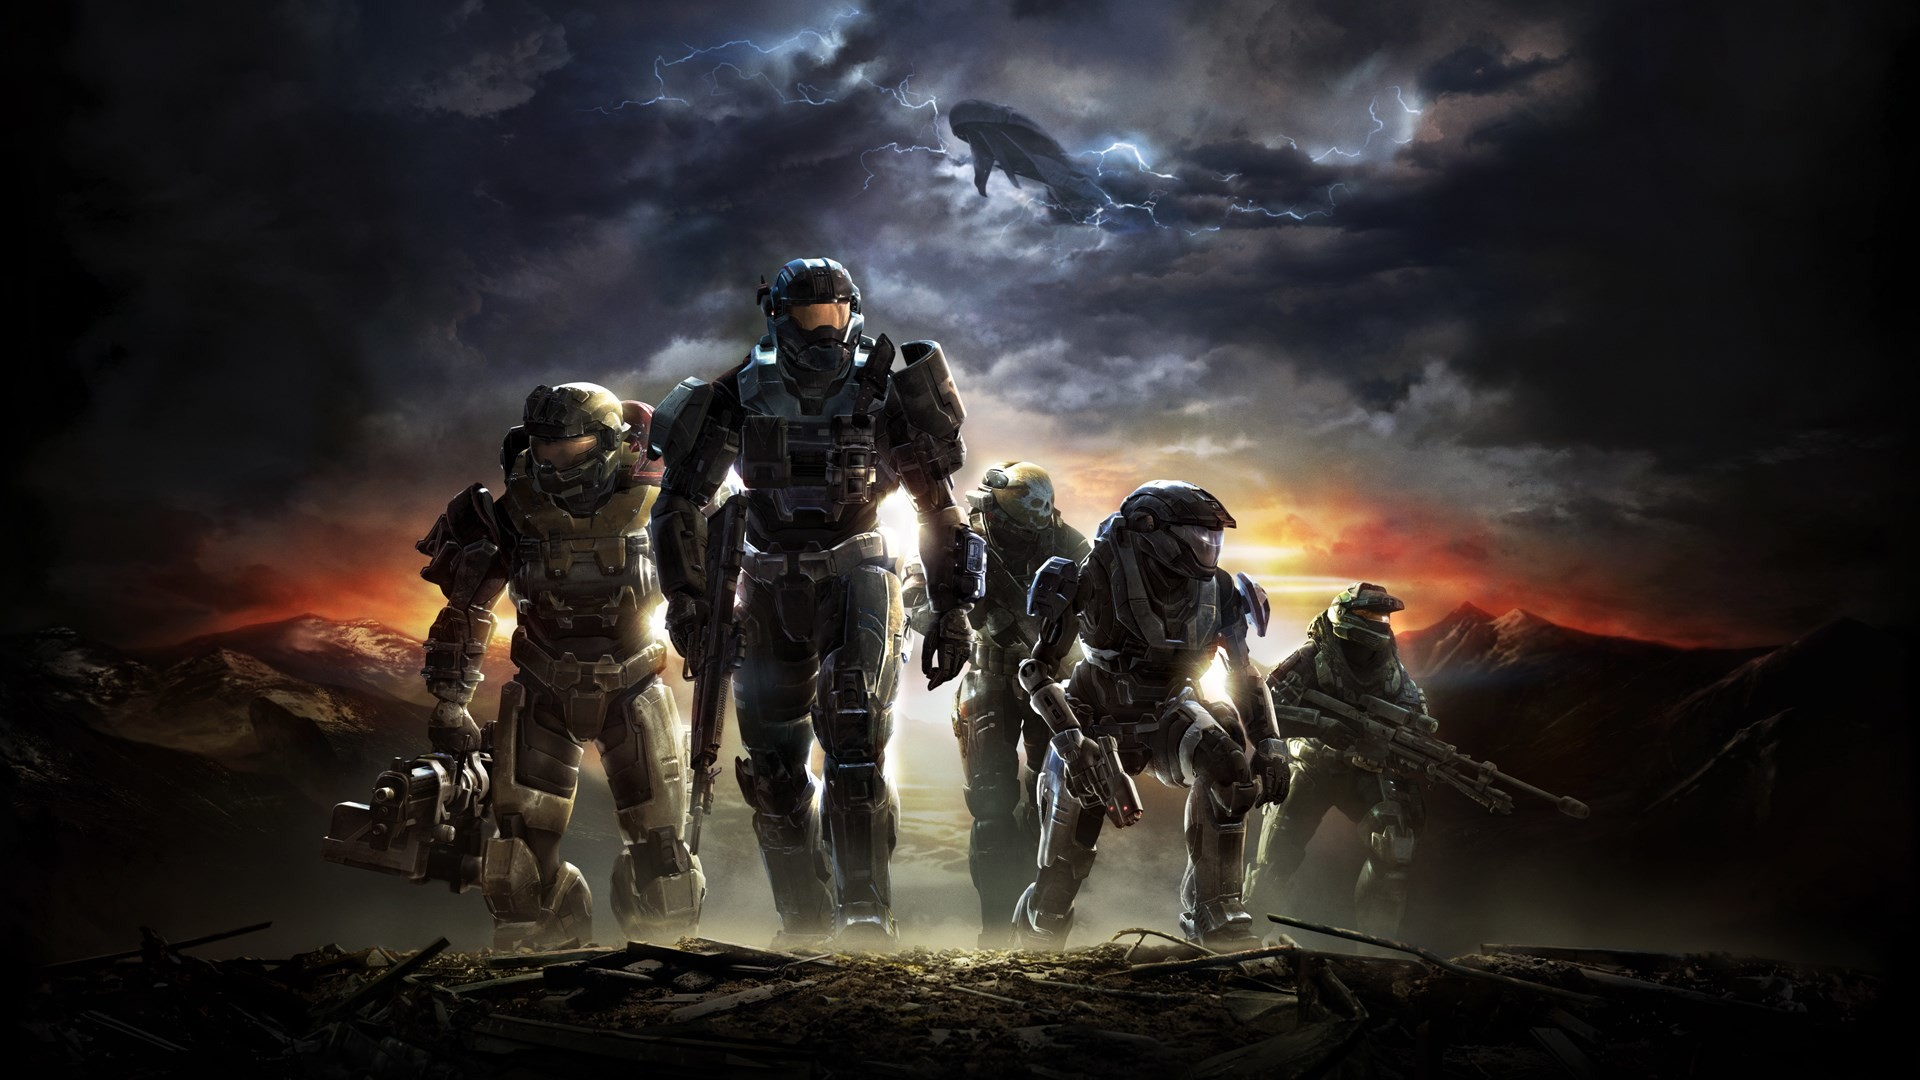 Halo: Reach PC Insider testing for Firefight now live